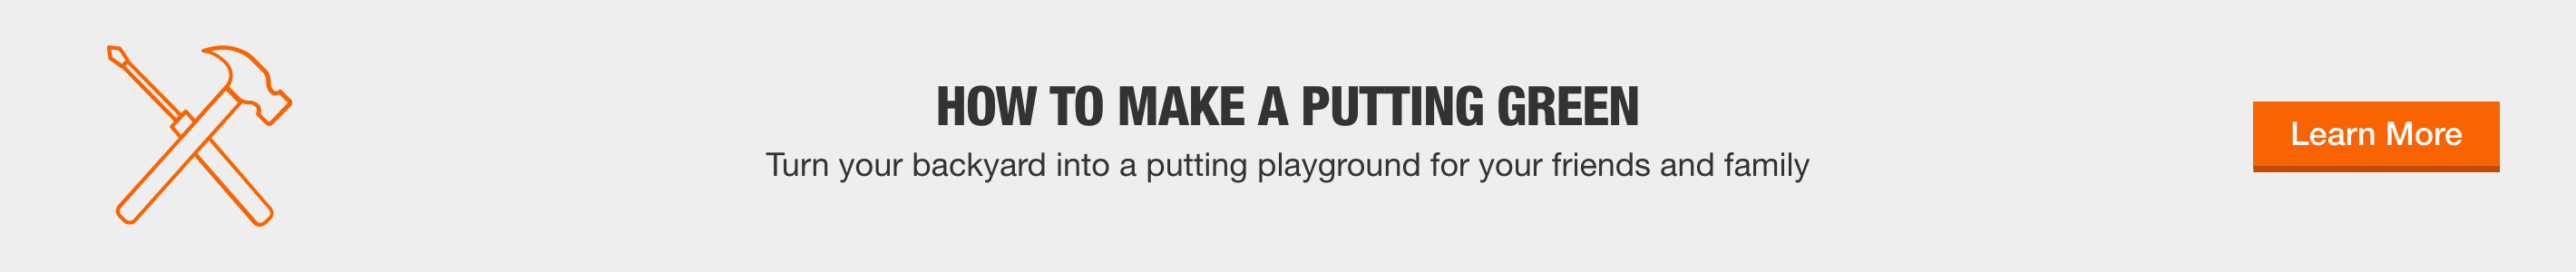 Guide: How to Make a Putting Green